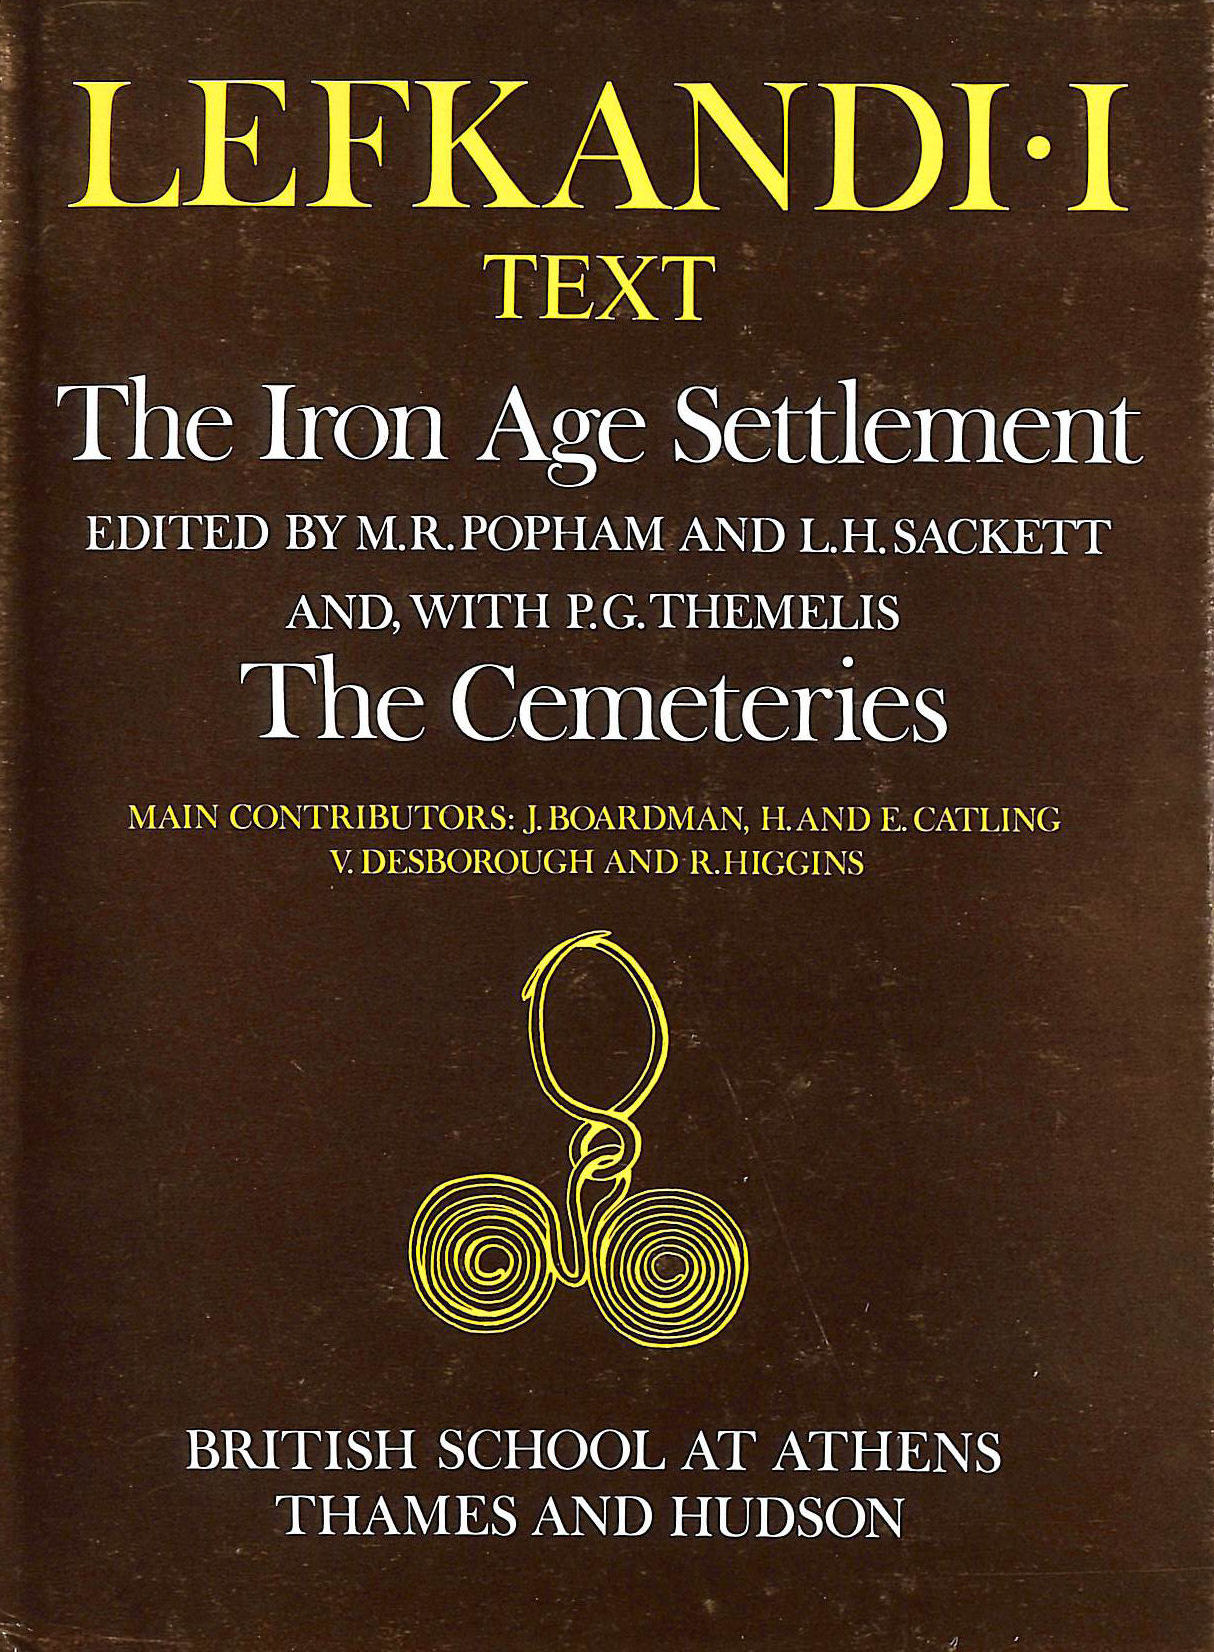 Image for Lefkandi I: Text: The Iron Age Settlement. The Cemeteries